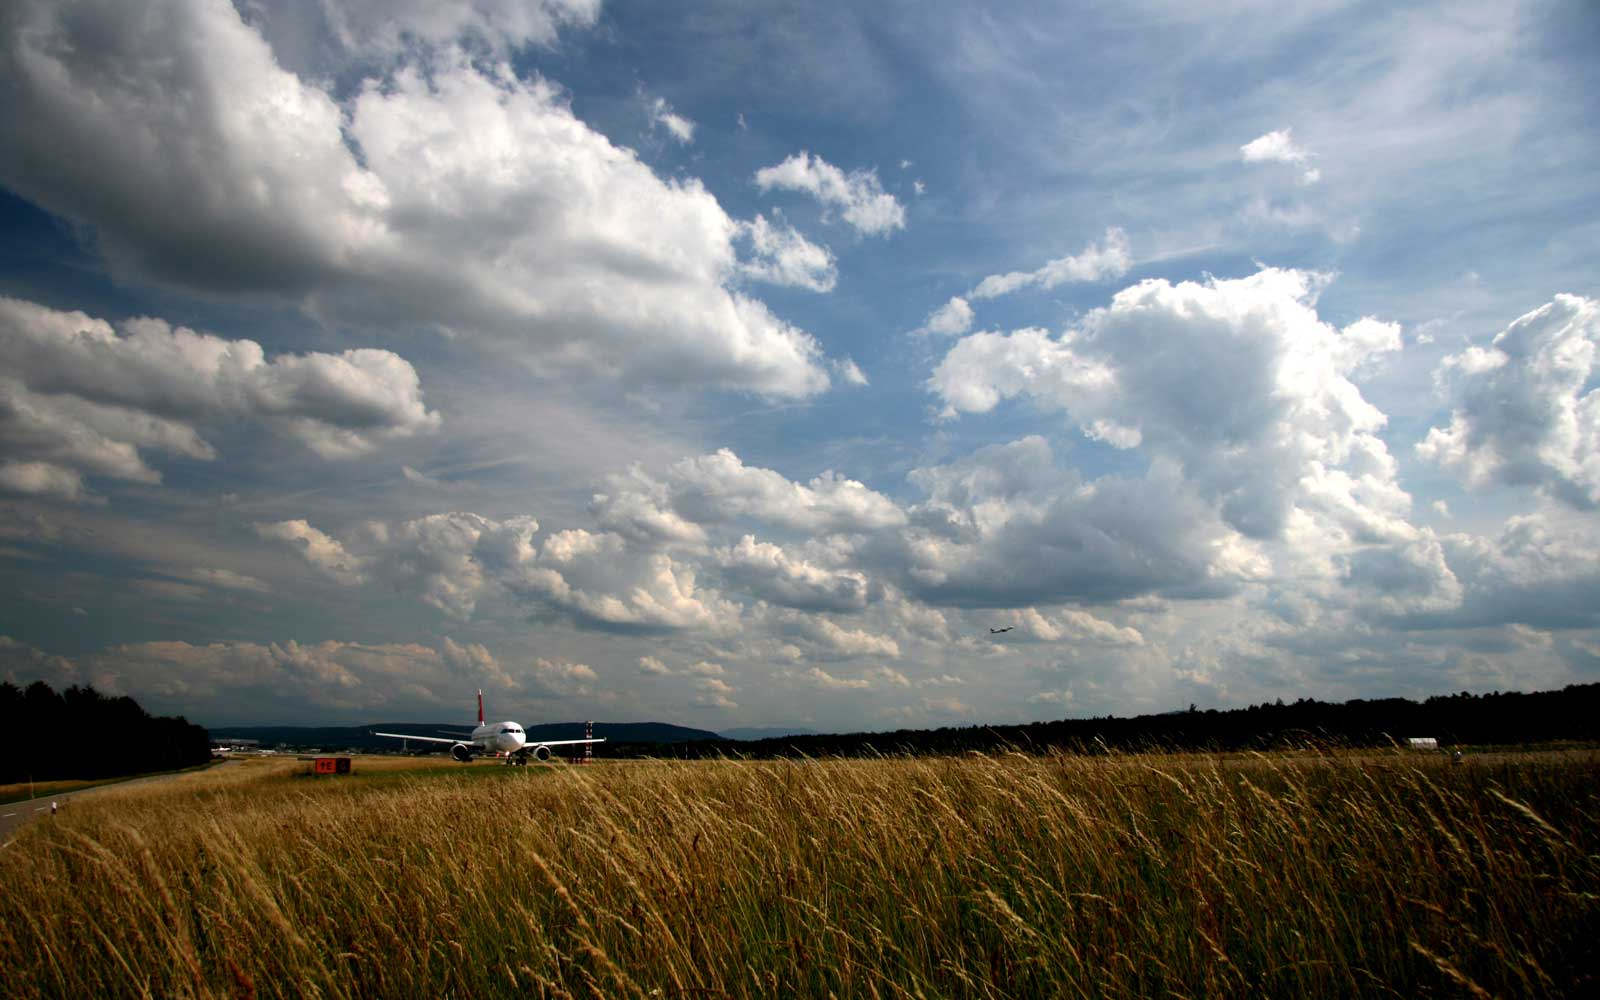 More than half of the airport consists of nature spaces.